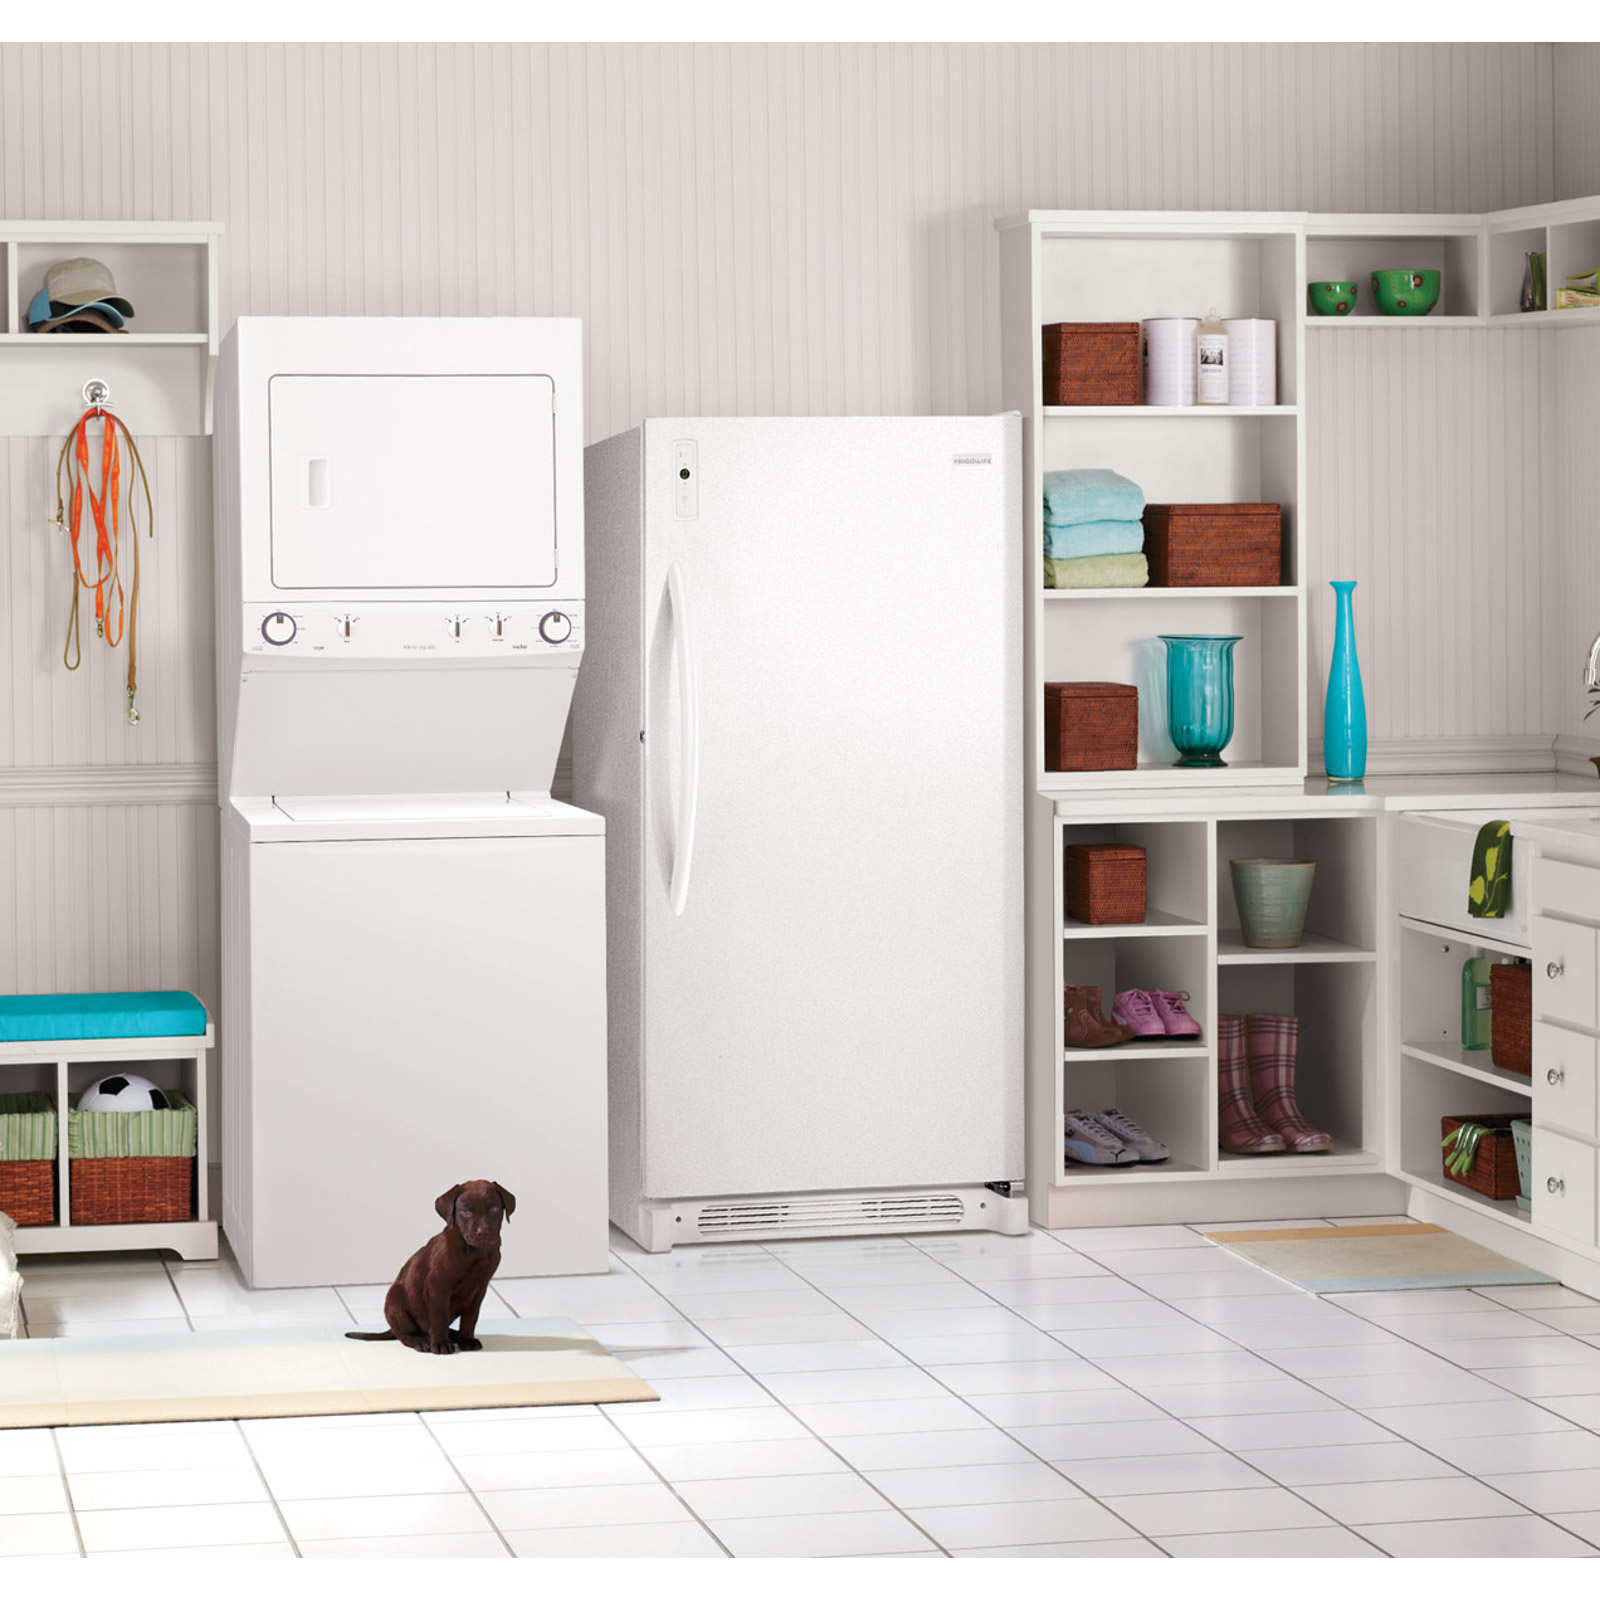 "Frigidaire FFLG3911QW HE 27"" Super Capacity 3.8 cu. ft. Gas Laundry Center - White"